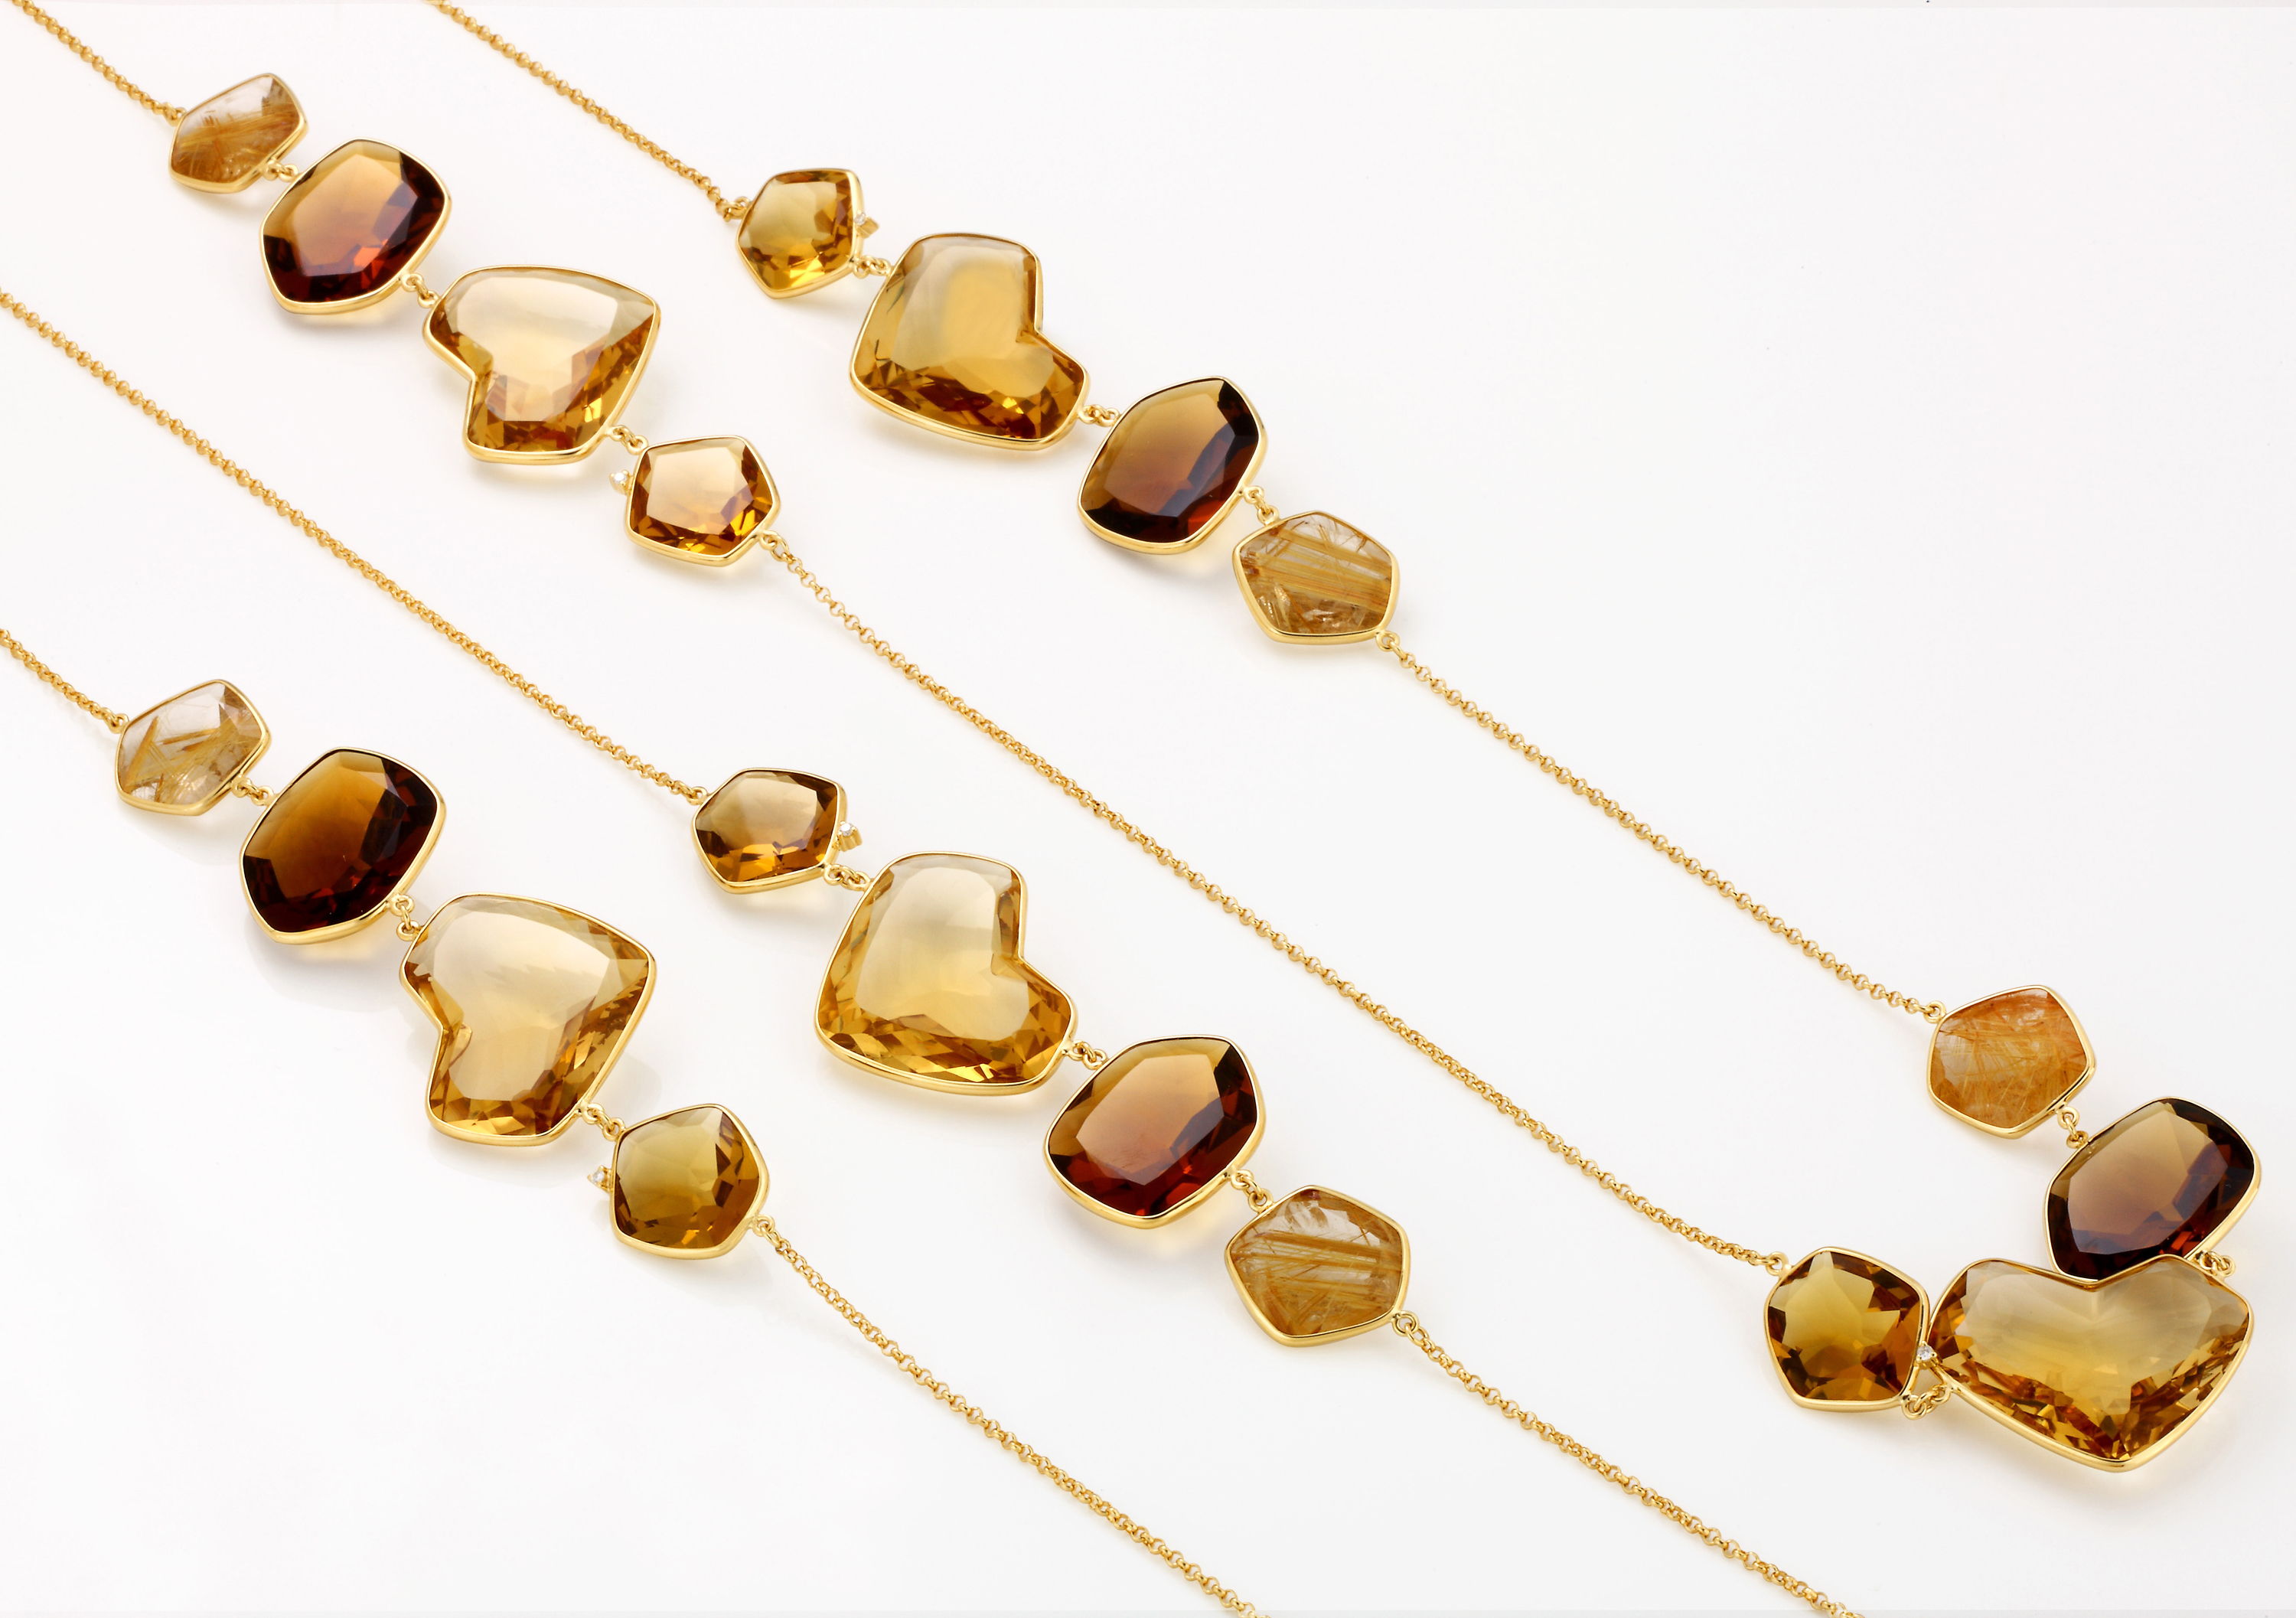 Vianna Brasil Transparenza necklace | JCK On Your Market